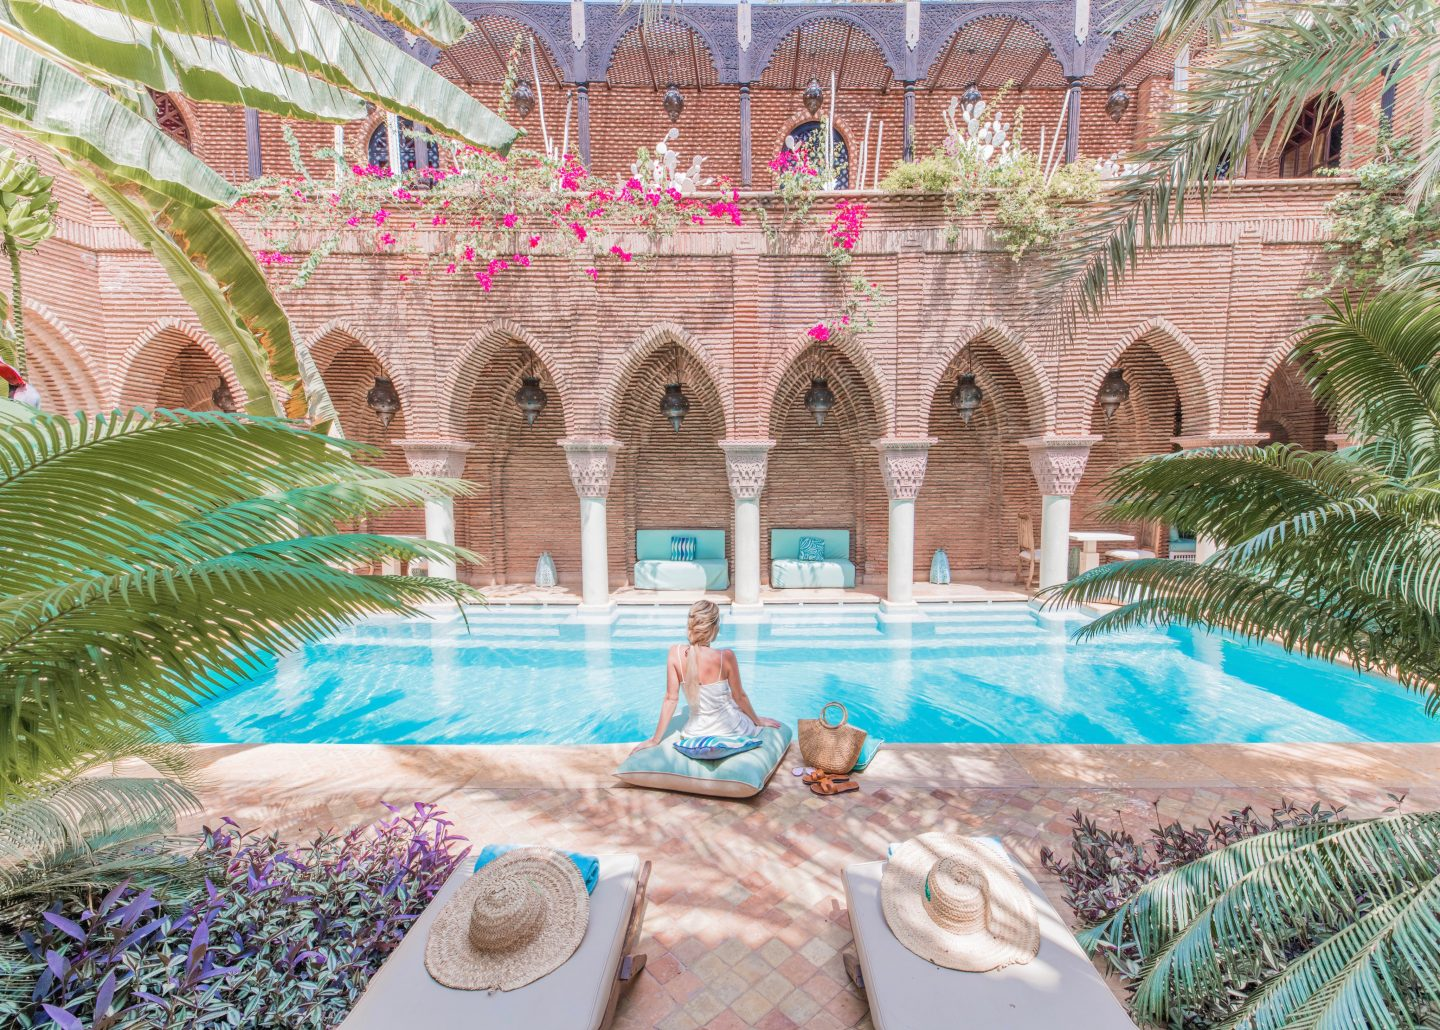 Planning a Perfect Week in Marrakech